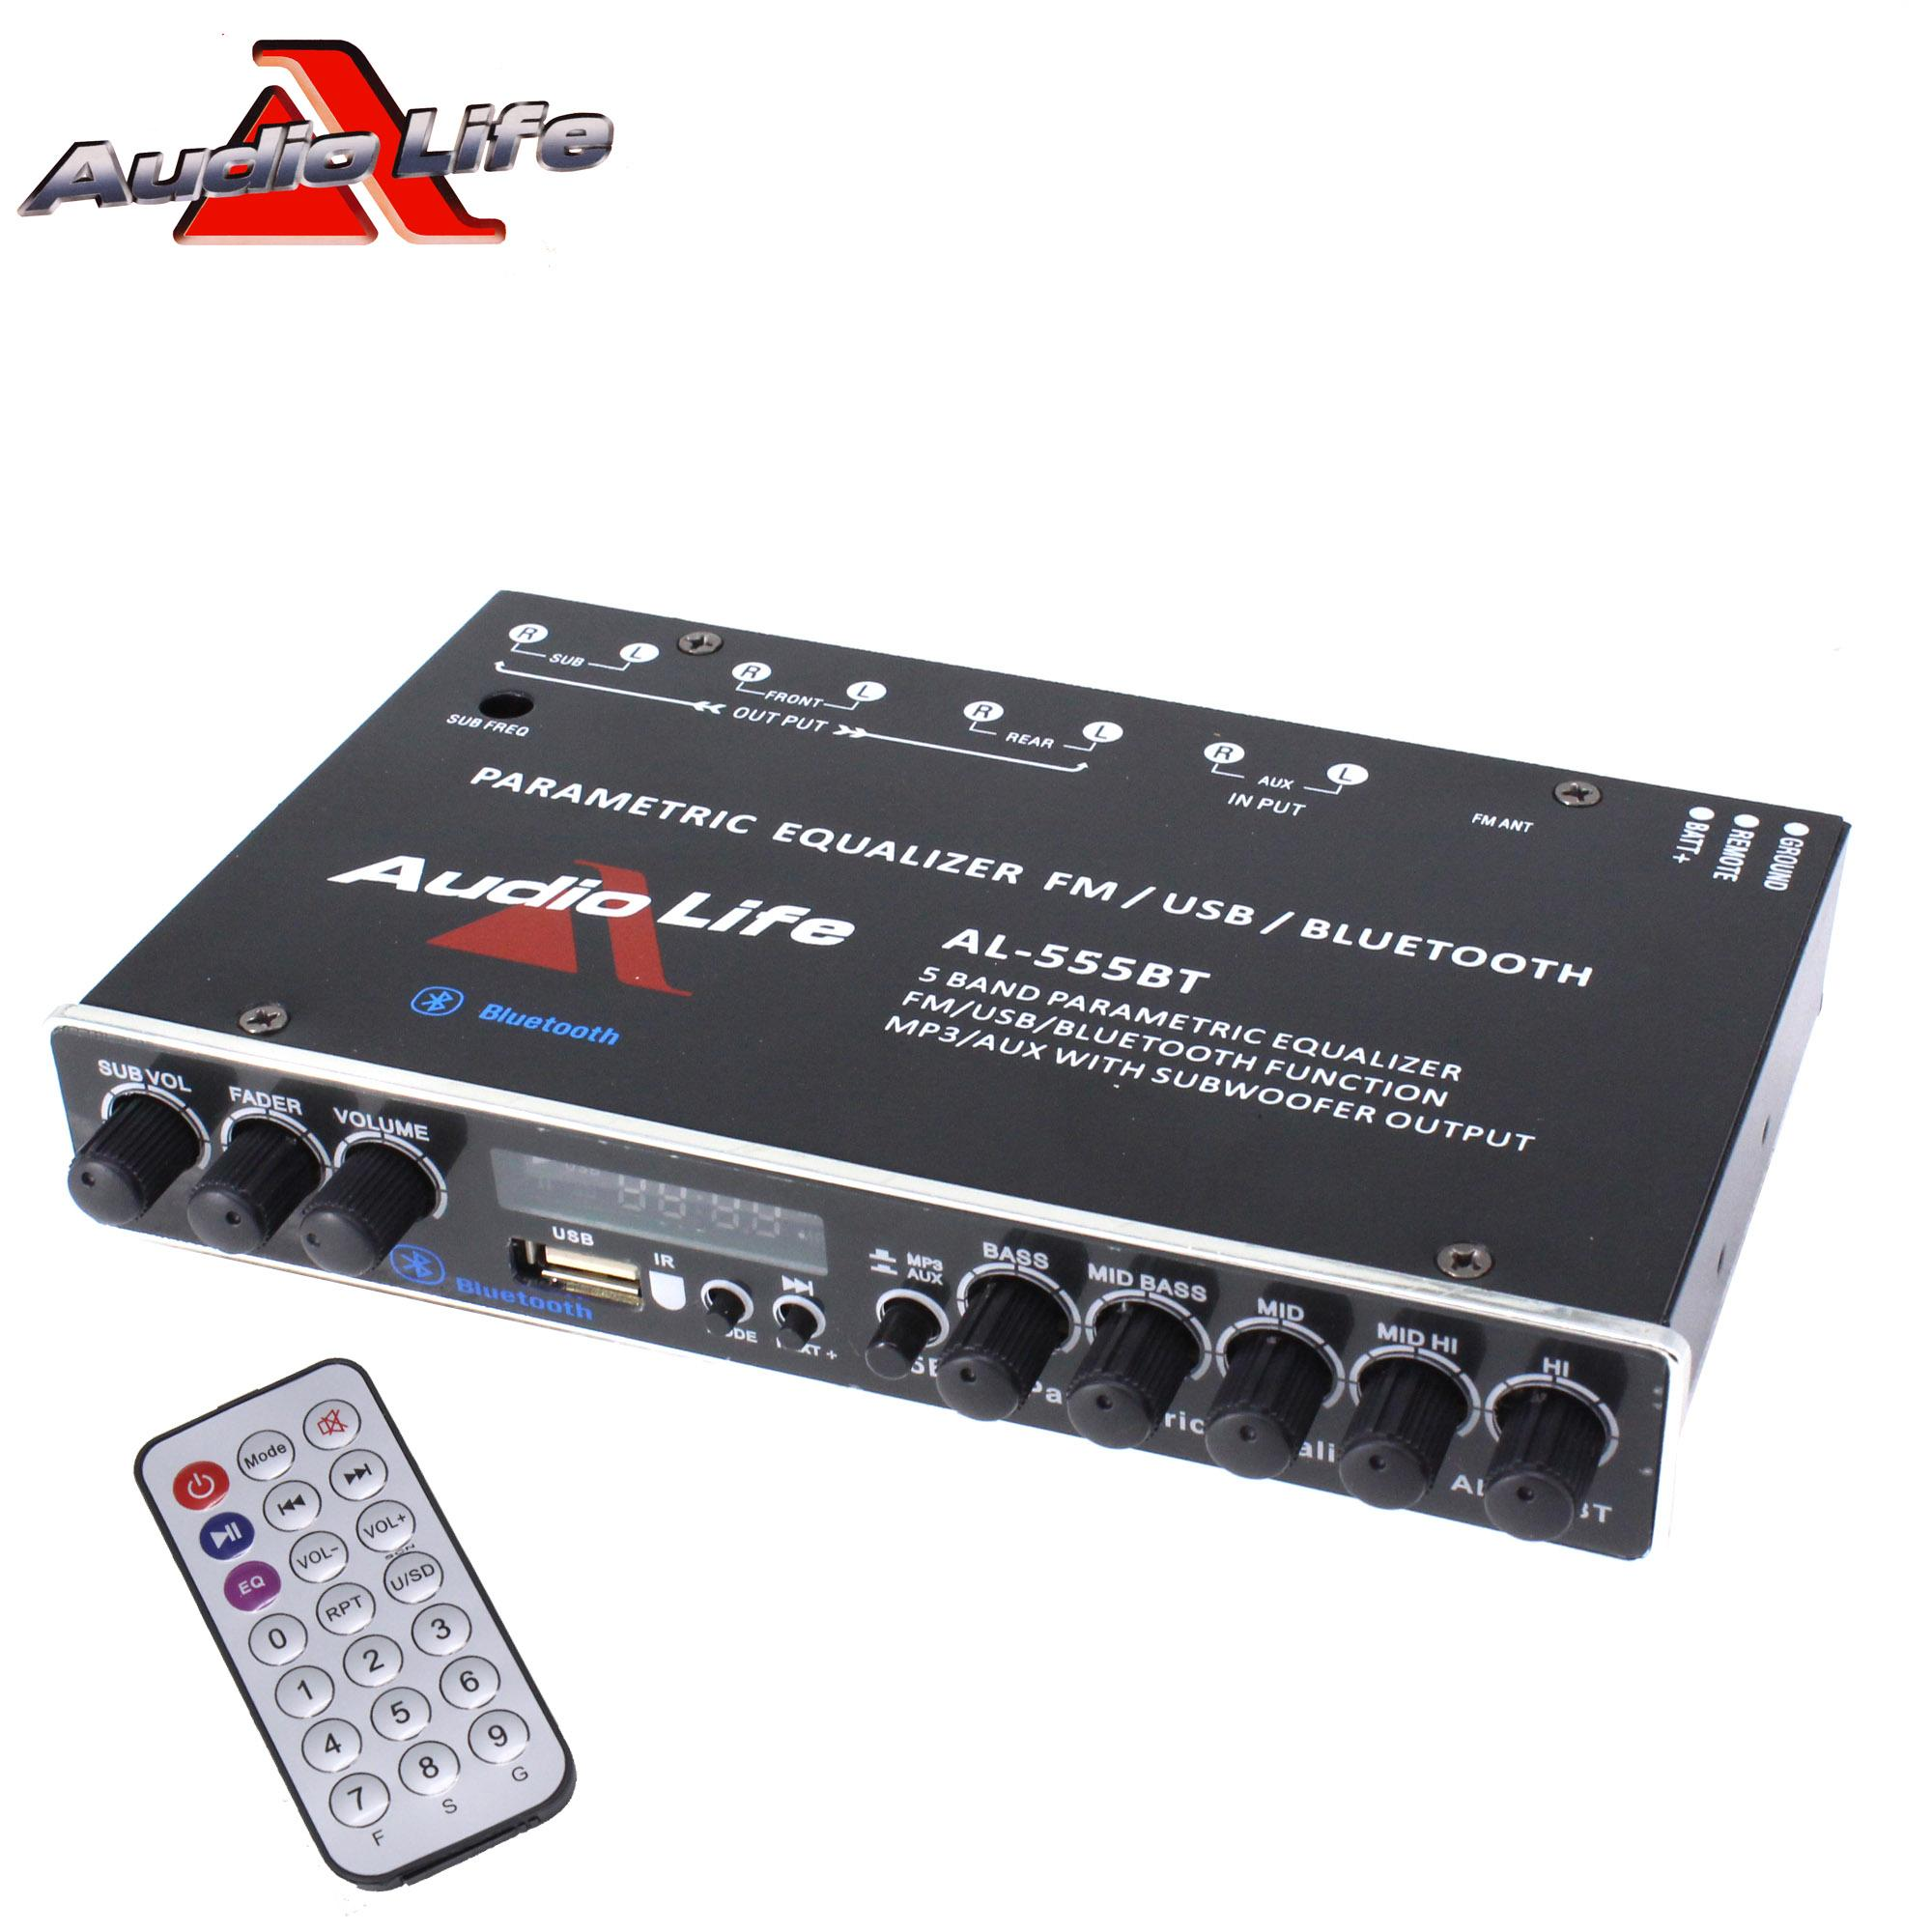 Power Acoustik Equalizer Wiring Diagrams Car For Sale Stereo Online Brands Prices Audio Life Al 555bt 5 Band Parametric With Bt